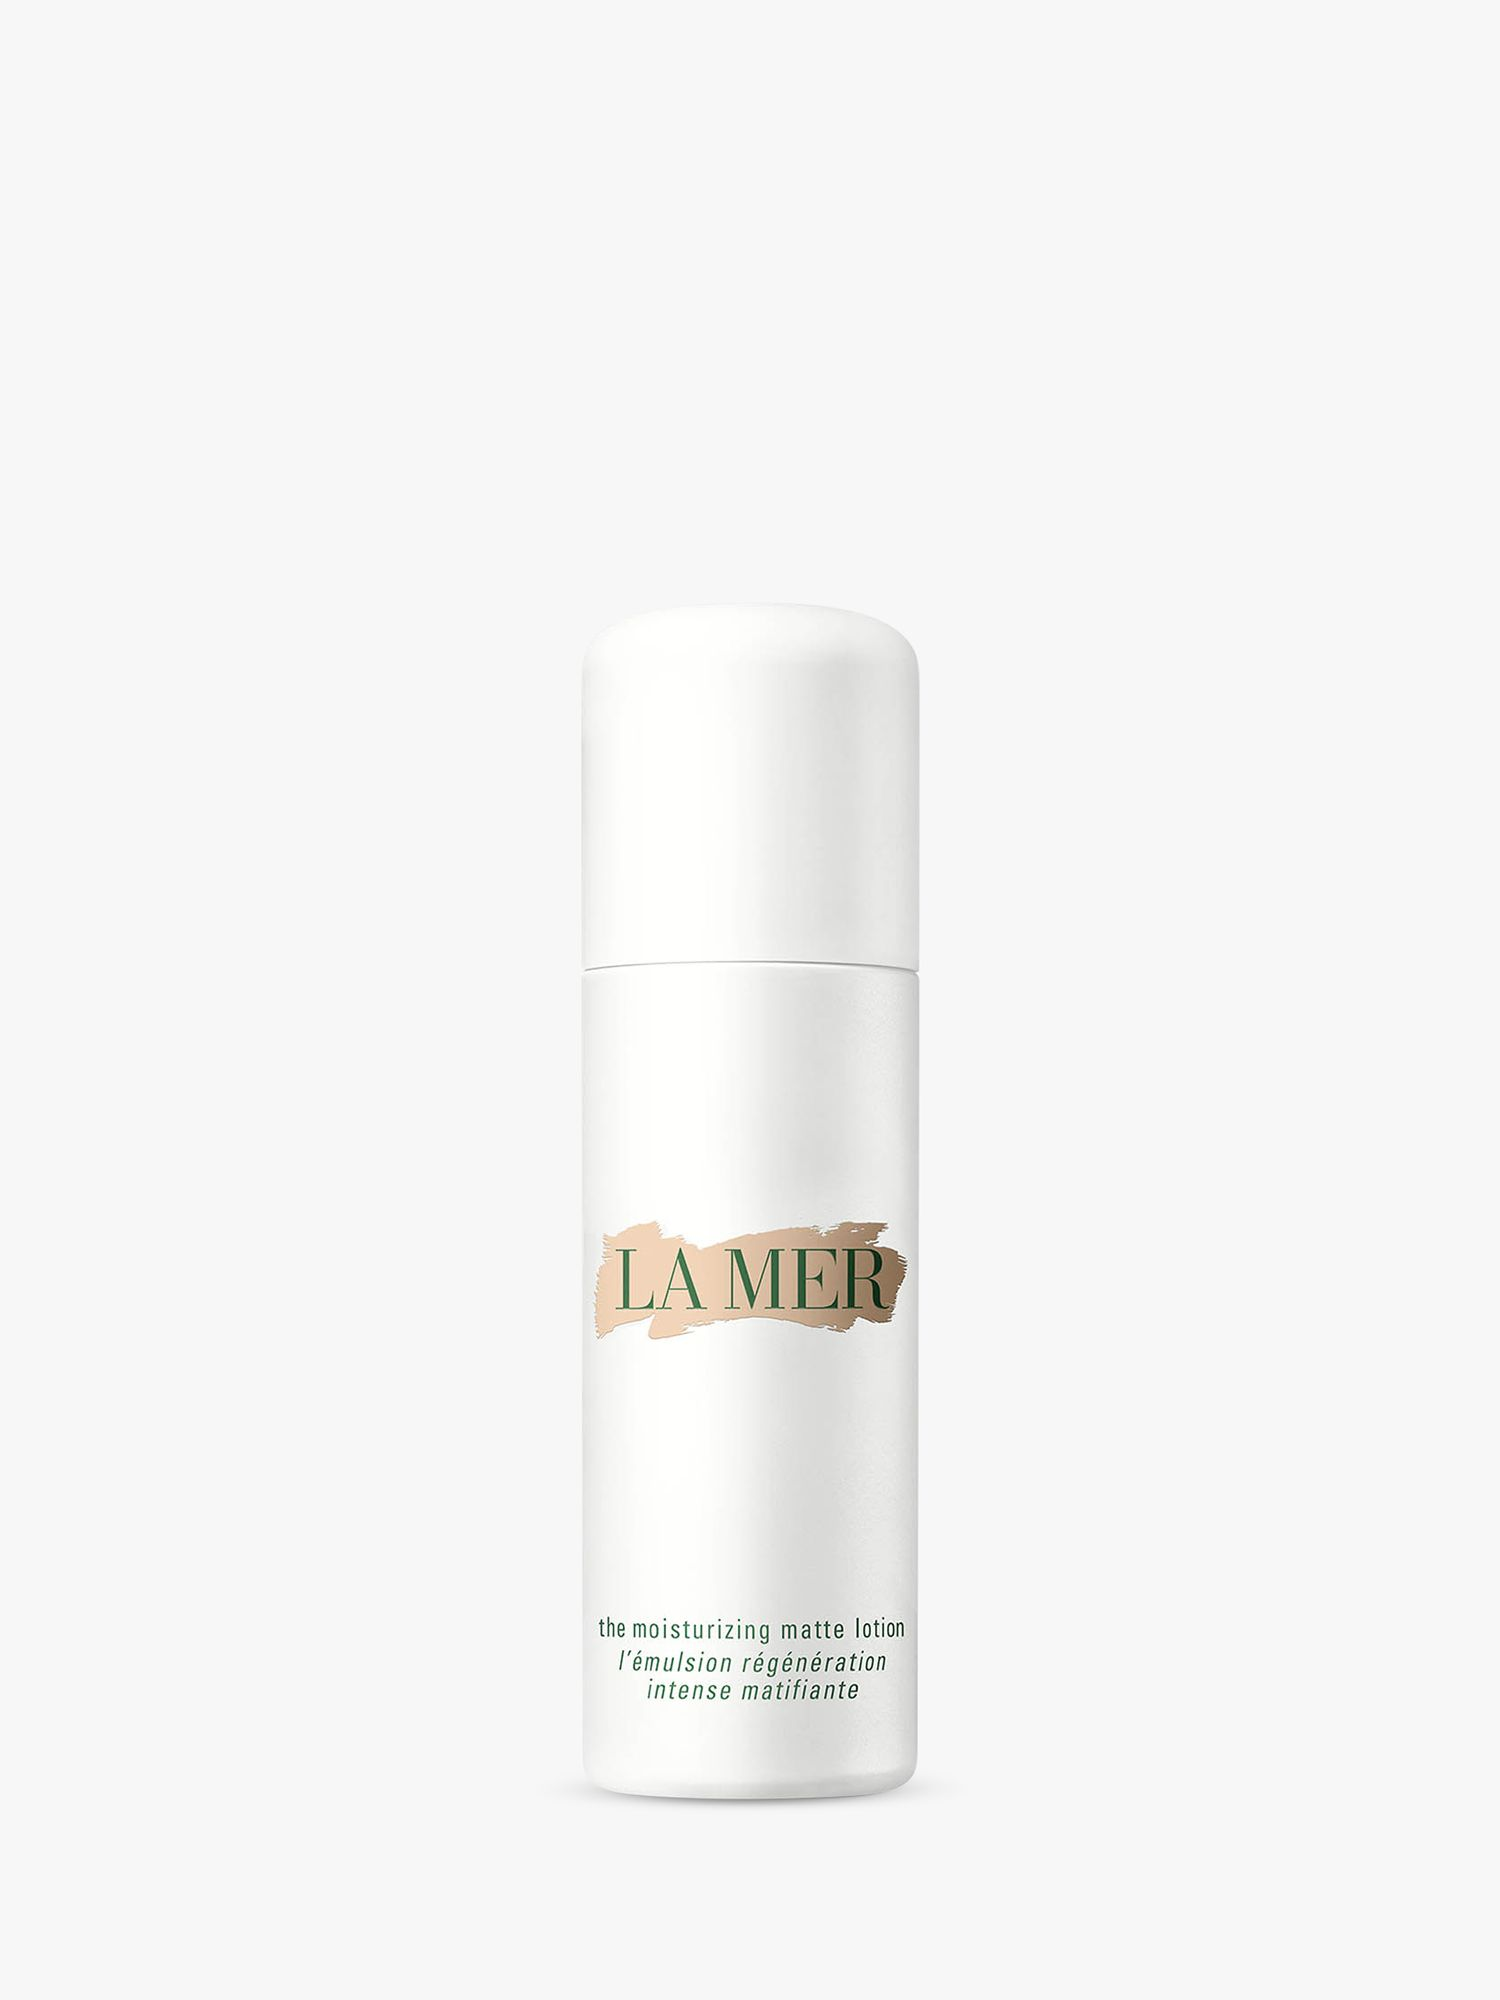 La Mer La Mer The Moisturising Matte Lotion, 50ml